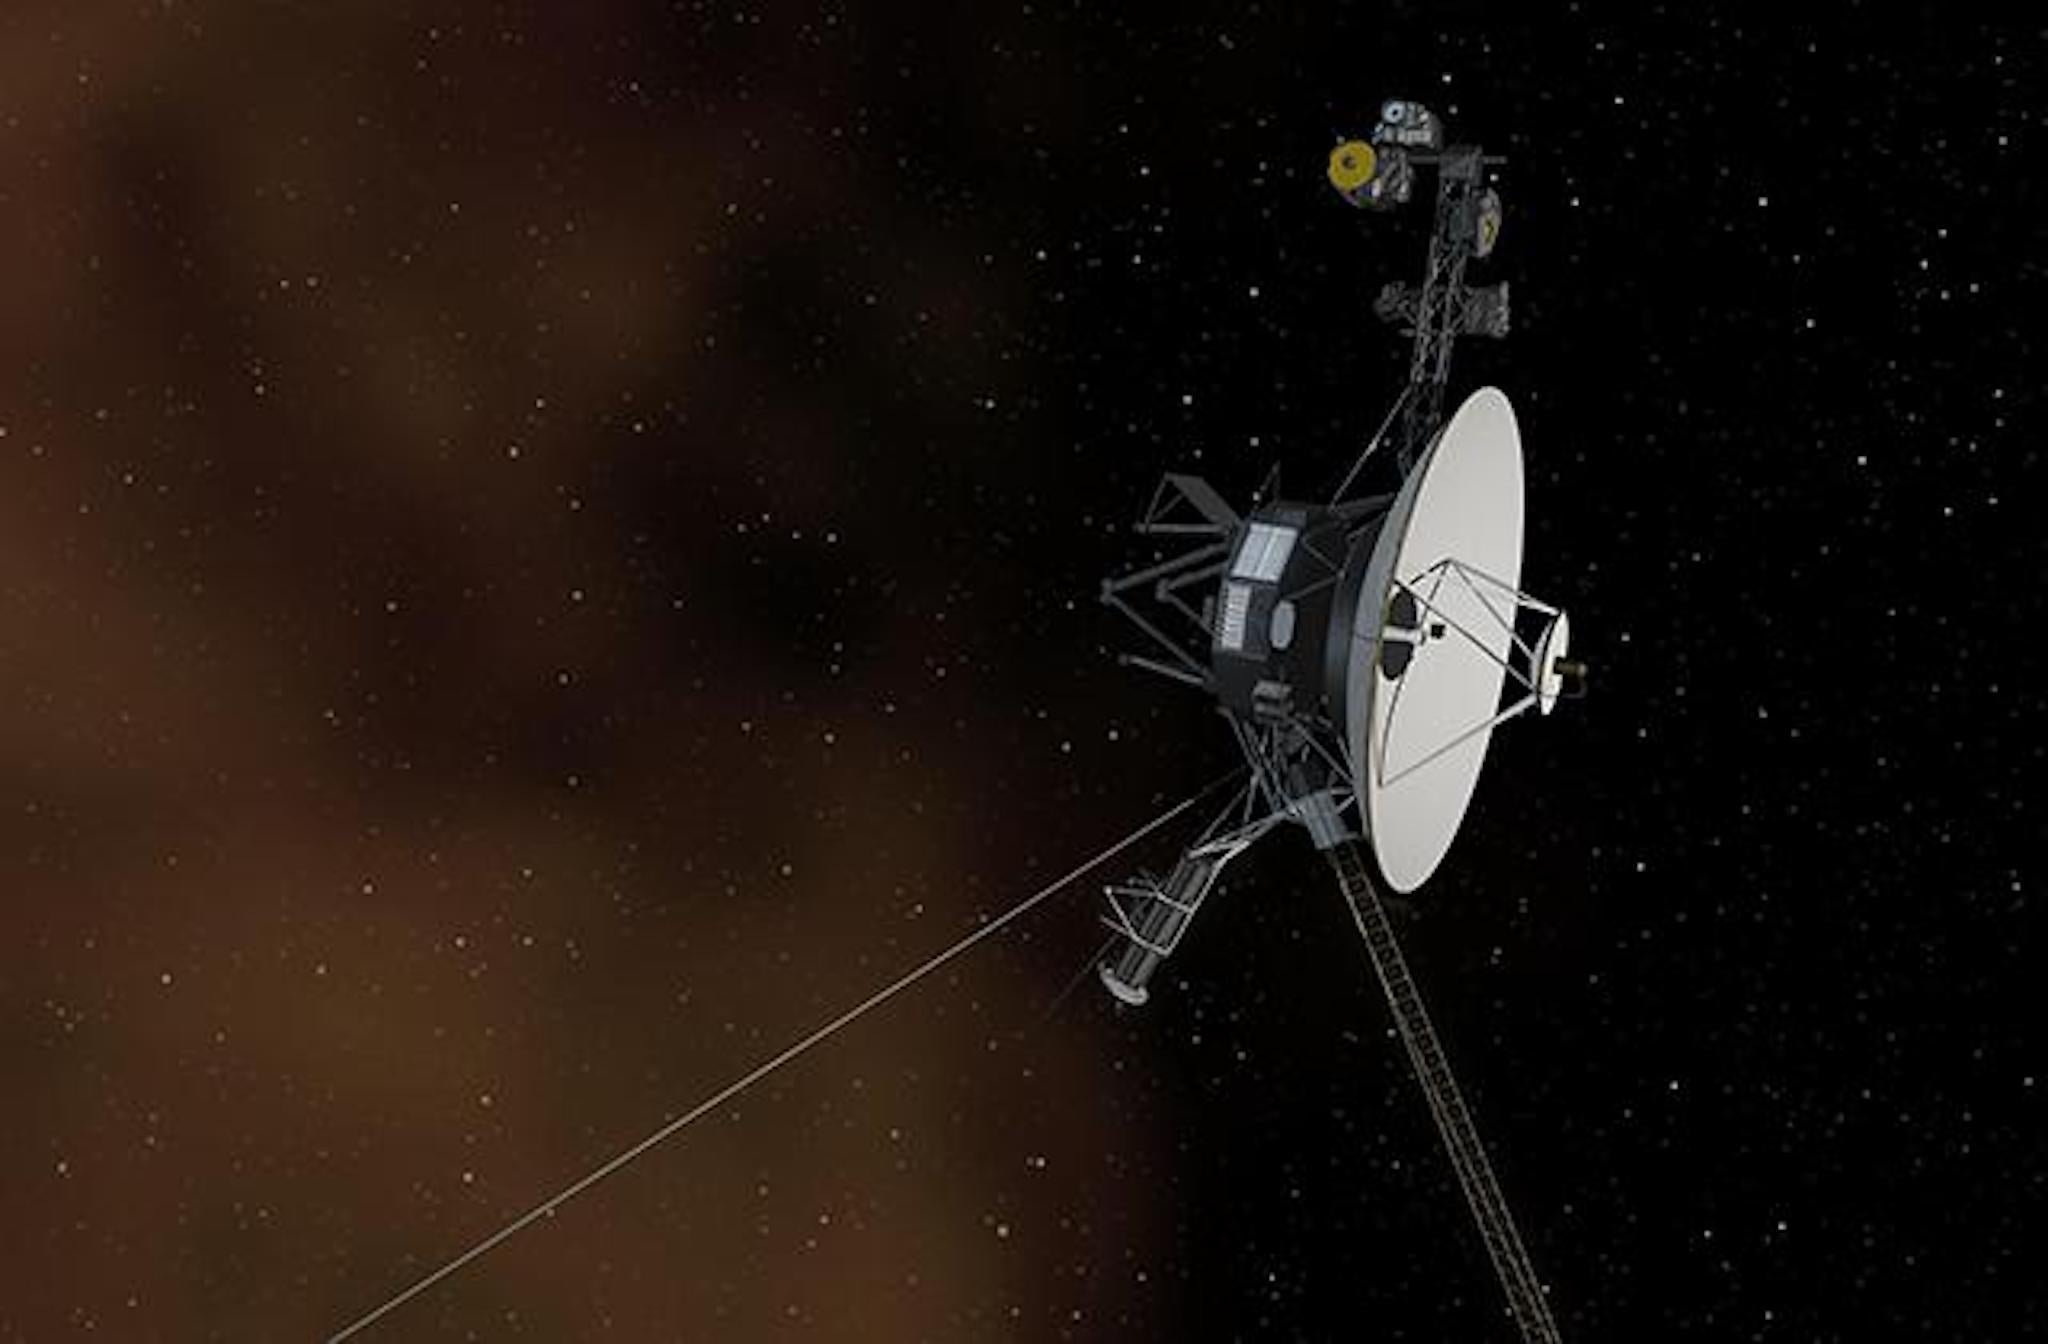 """The Voyager spacecraft is finding completely new """"unique physics"""" outside the Solar System"""